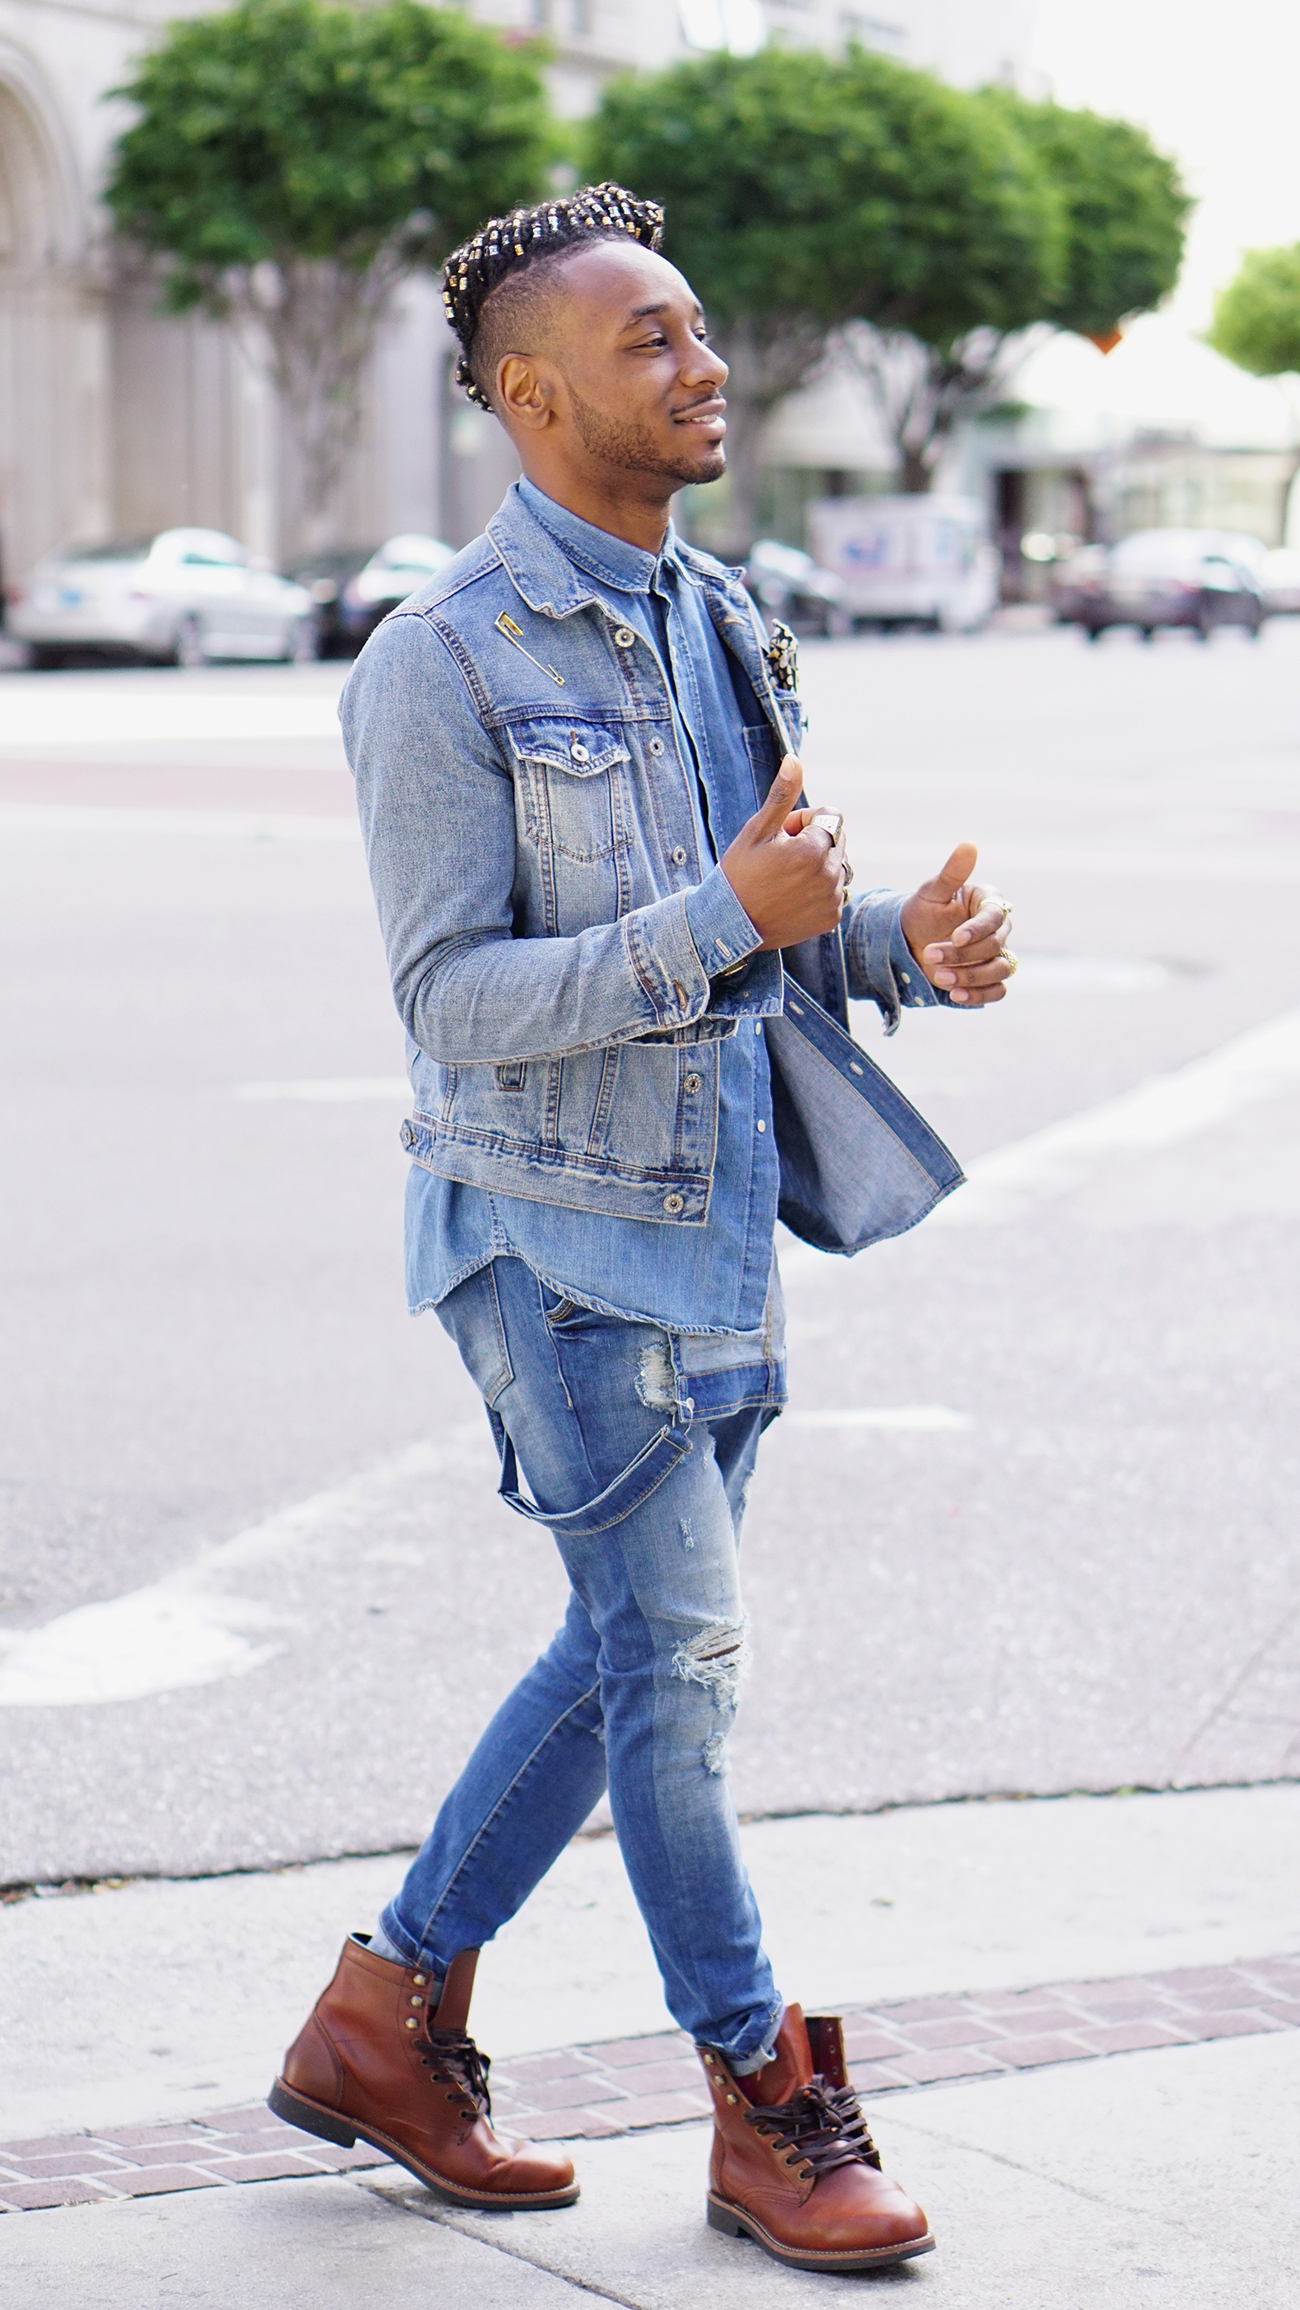 ootd denim layering with overalls � norris danta ford